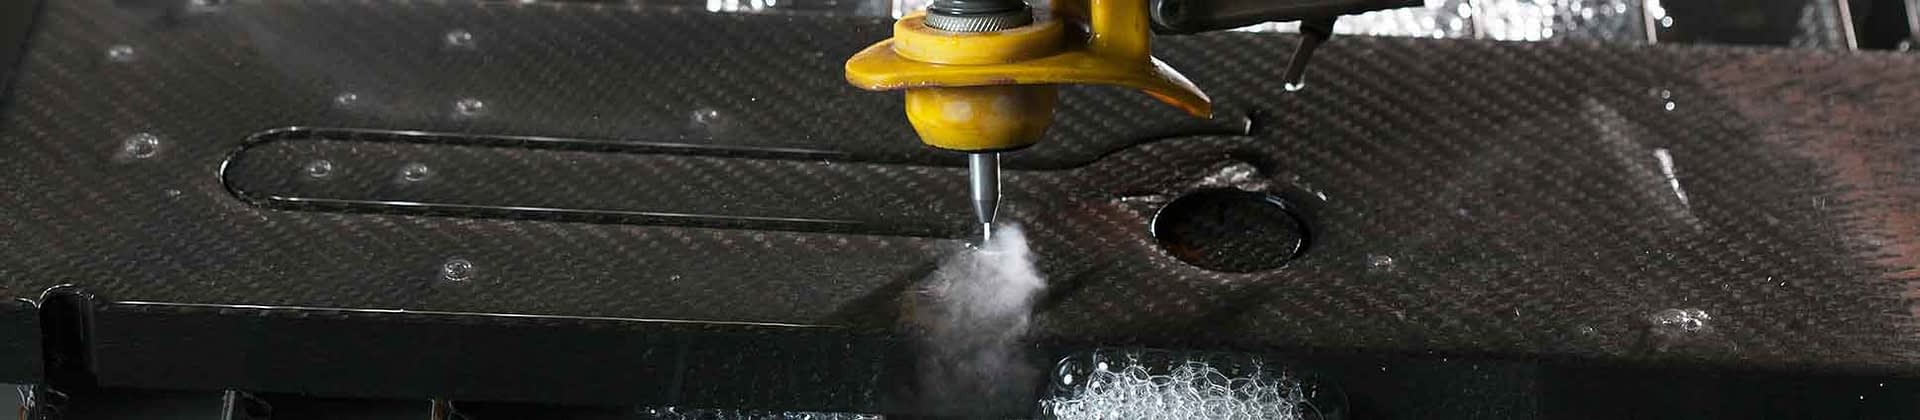 Water jet composite cutting